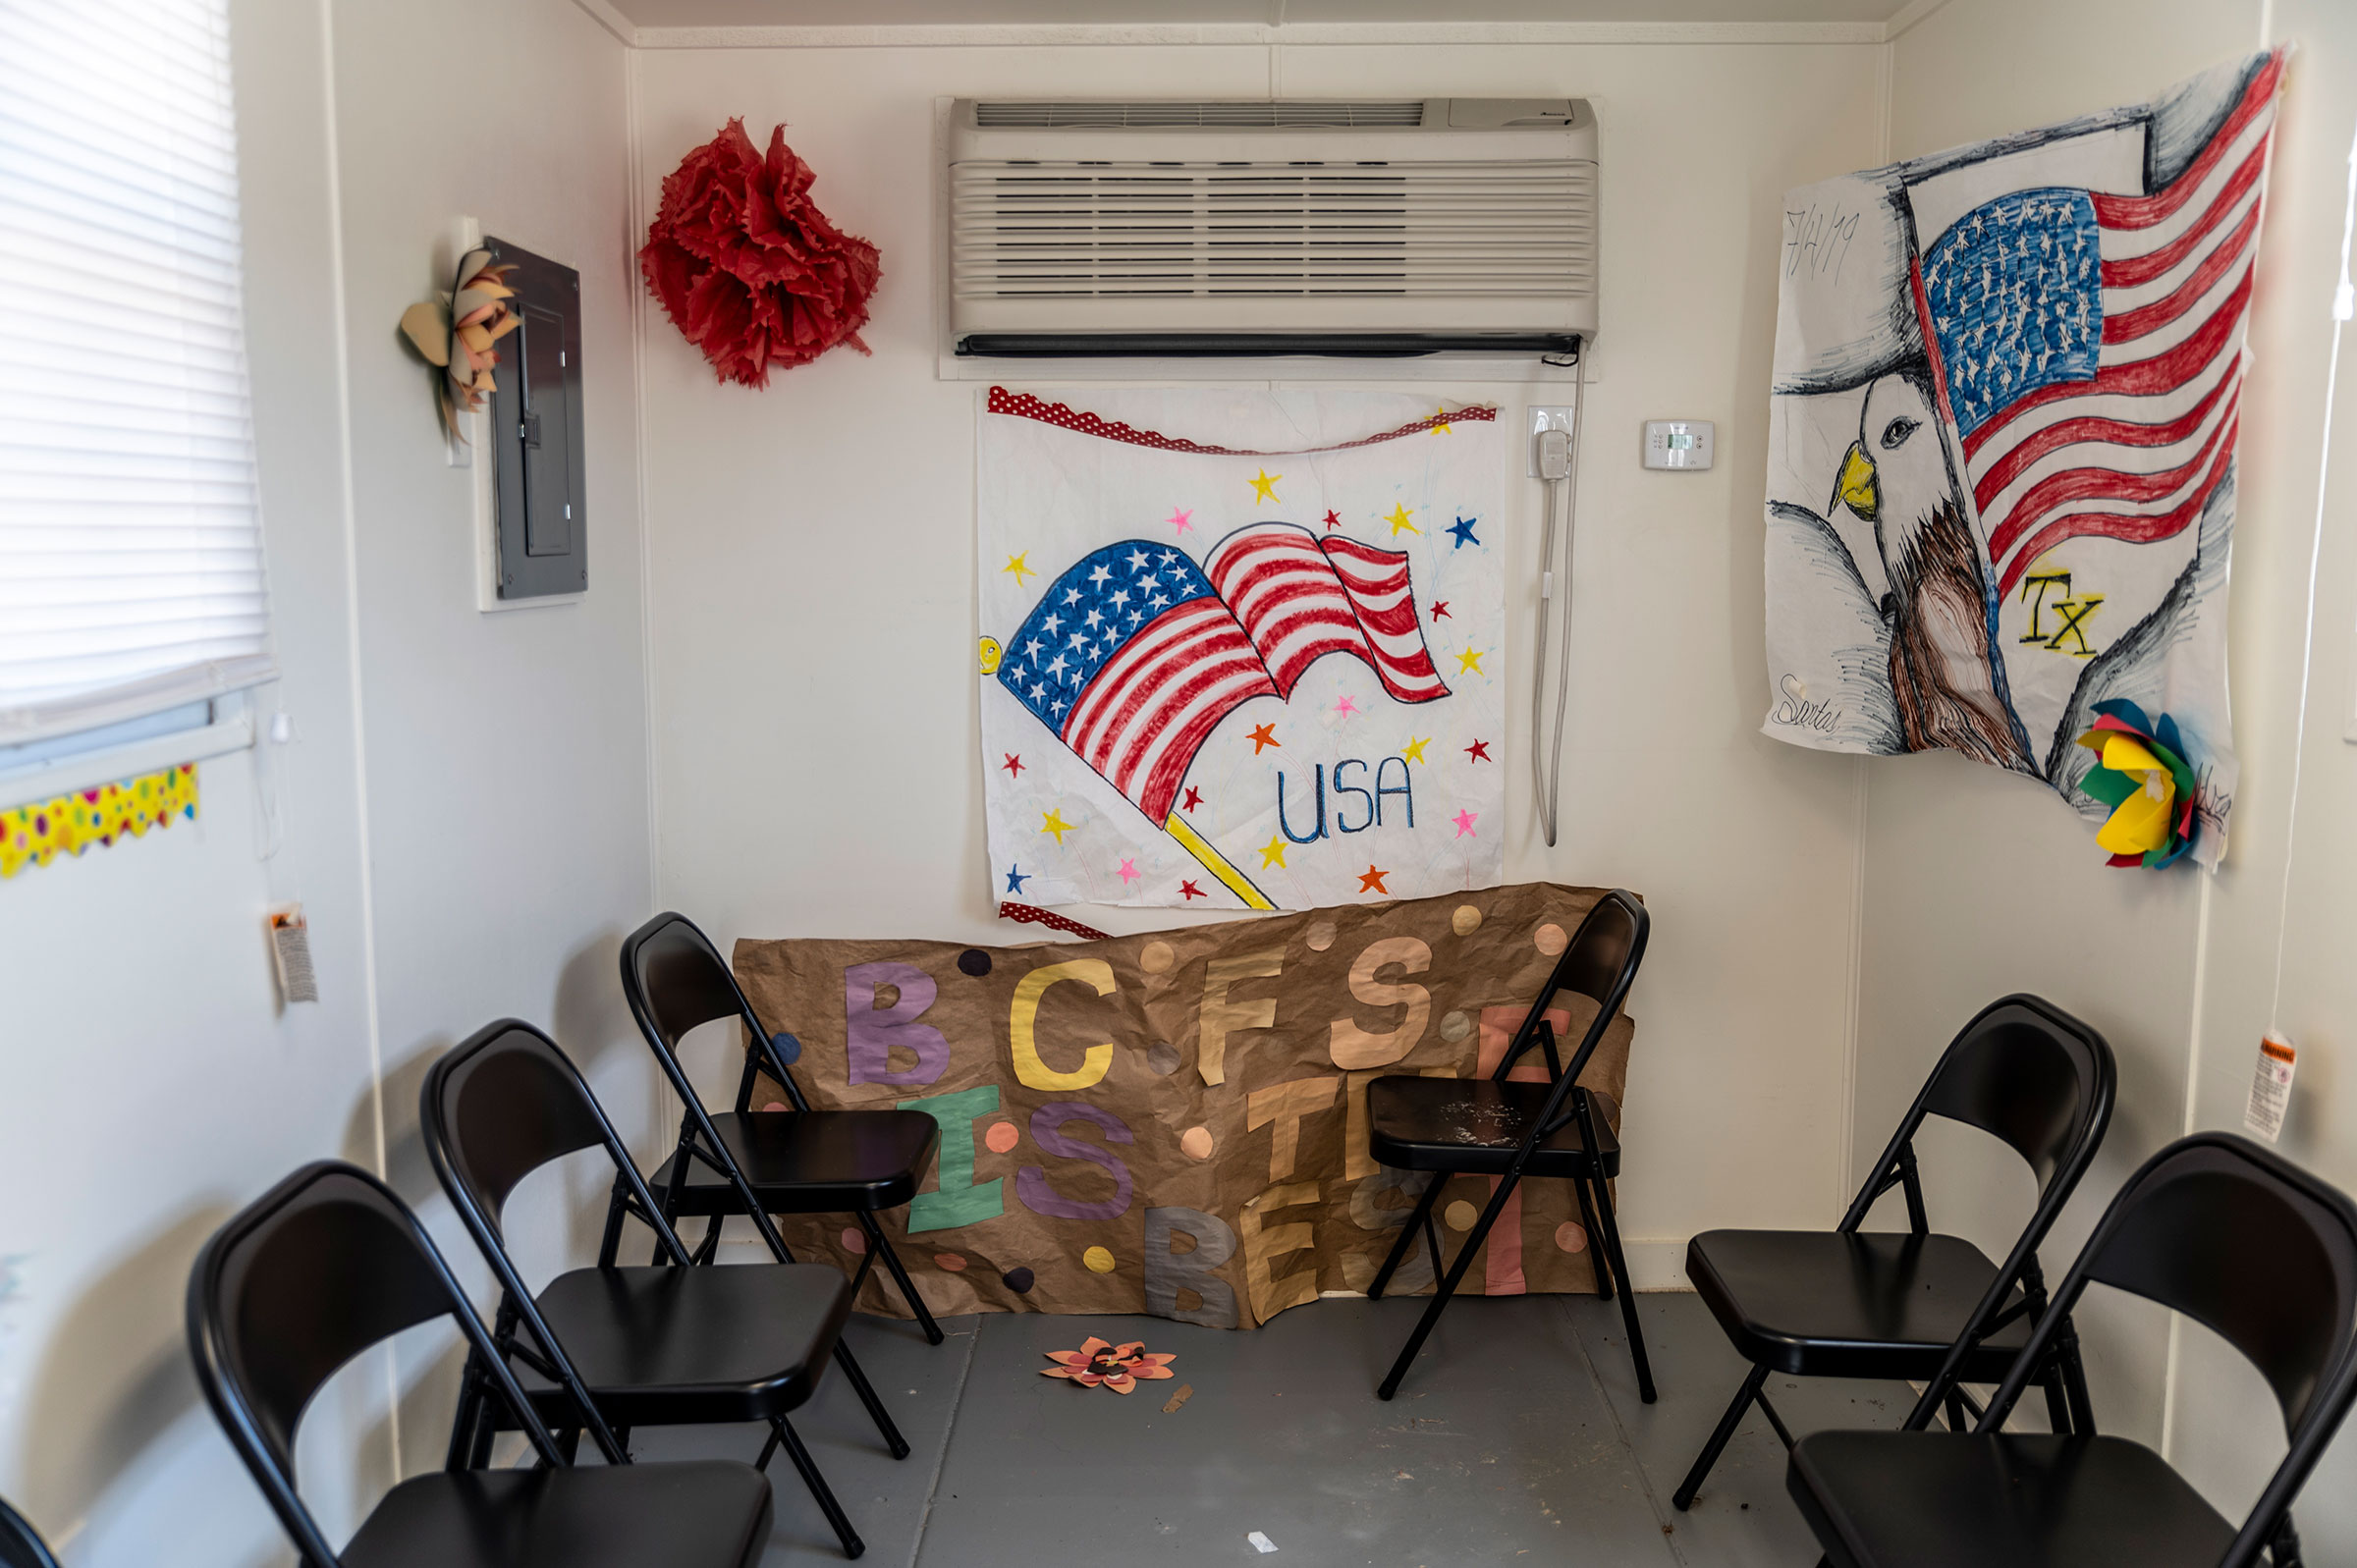 Artwork made by previous residents hangs inside a welcome center at a Influx Care Facility for unaccompanied children in Carrizo Springs, TX  on Feb. 21, 2021.